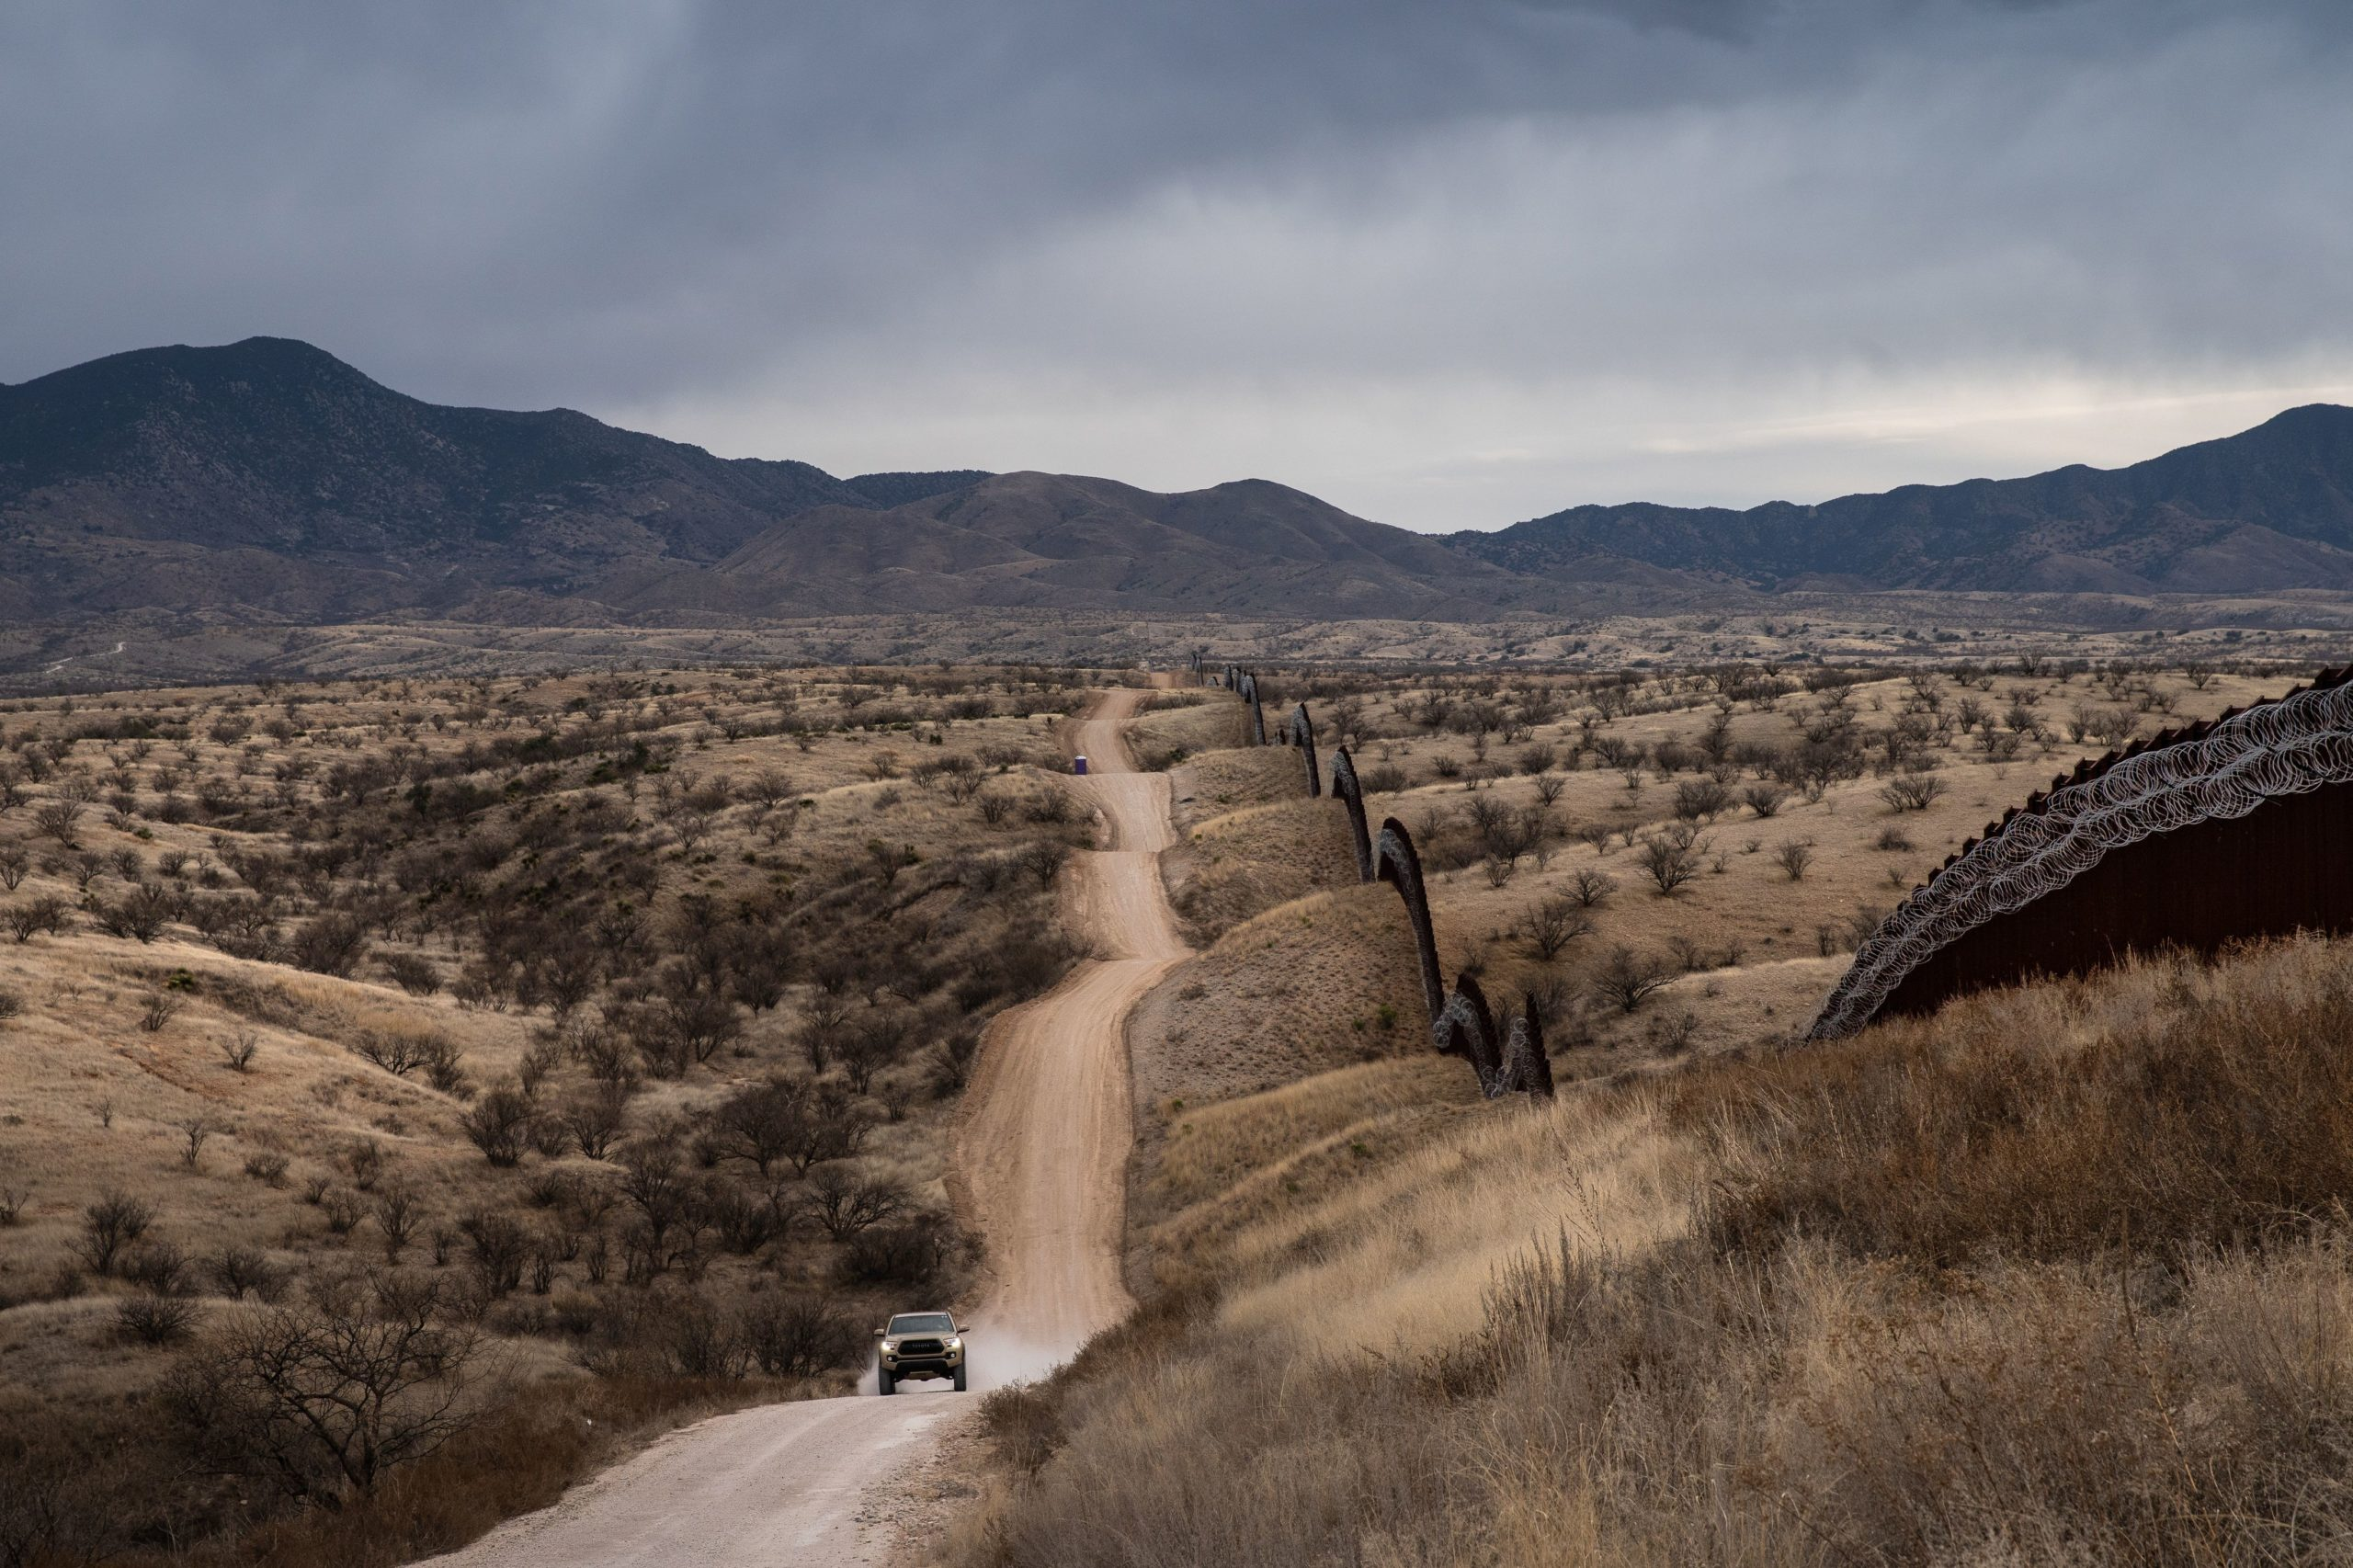 A car speeds by the US border fence, covered in barbed wire and concertina wire, separating the US and Mexico, at the outskirts of Nogales, Arizona, on February 9, 2019. (Photo by Ariana Drehsler / AFP) (Photo by ARIANA DREHSLER/AFP via Getty Images)